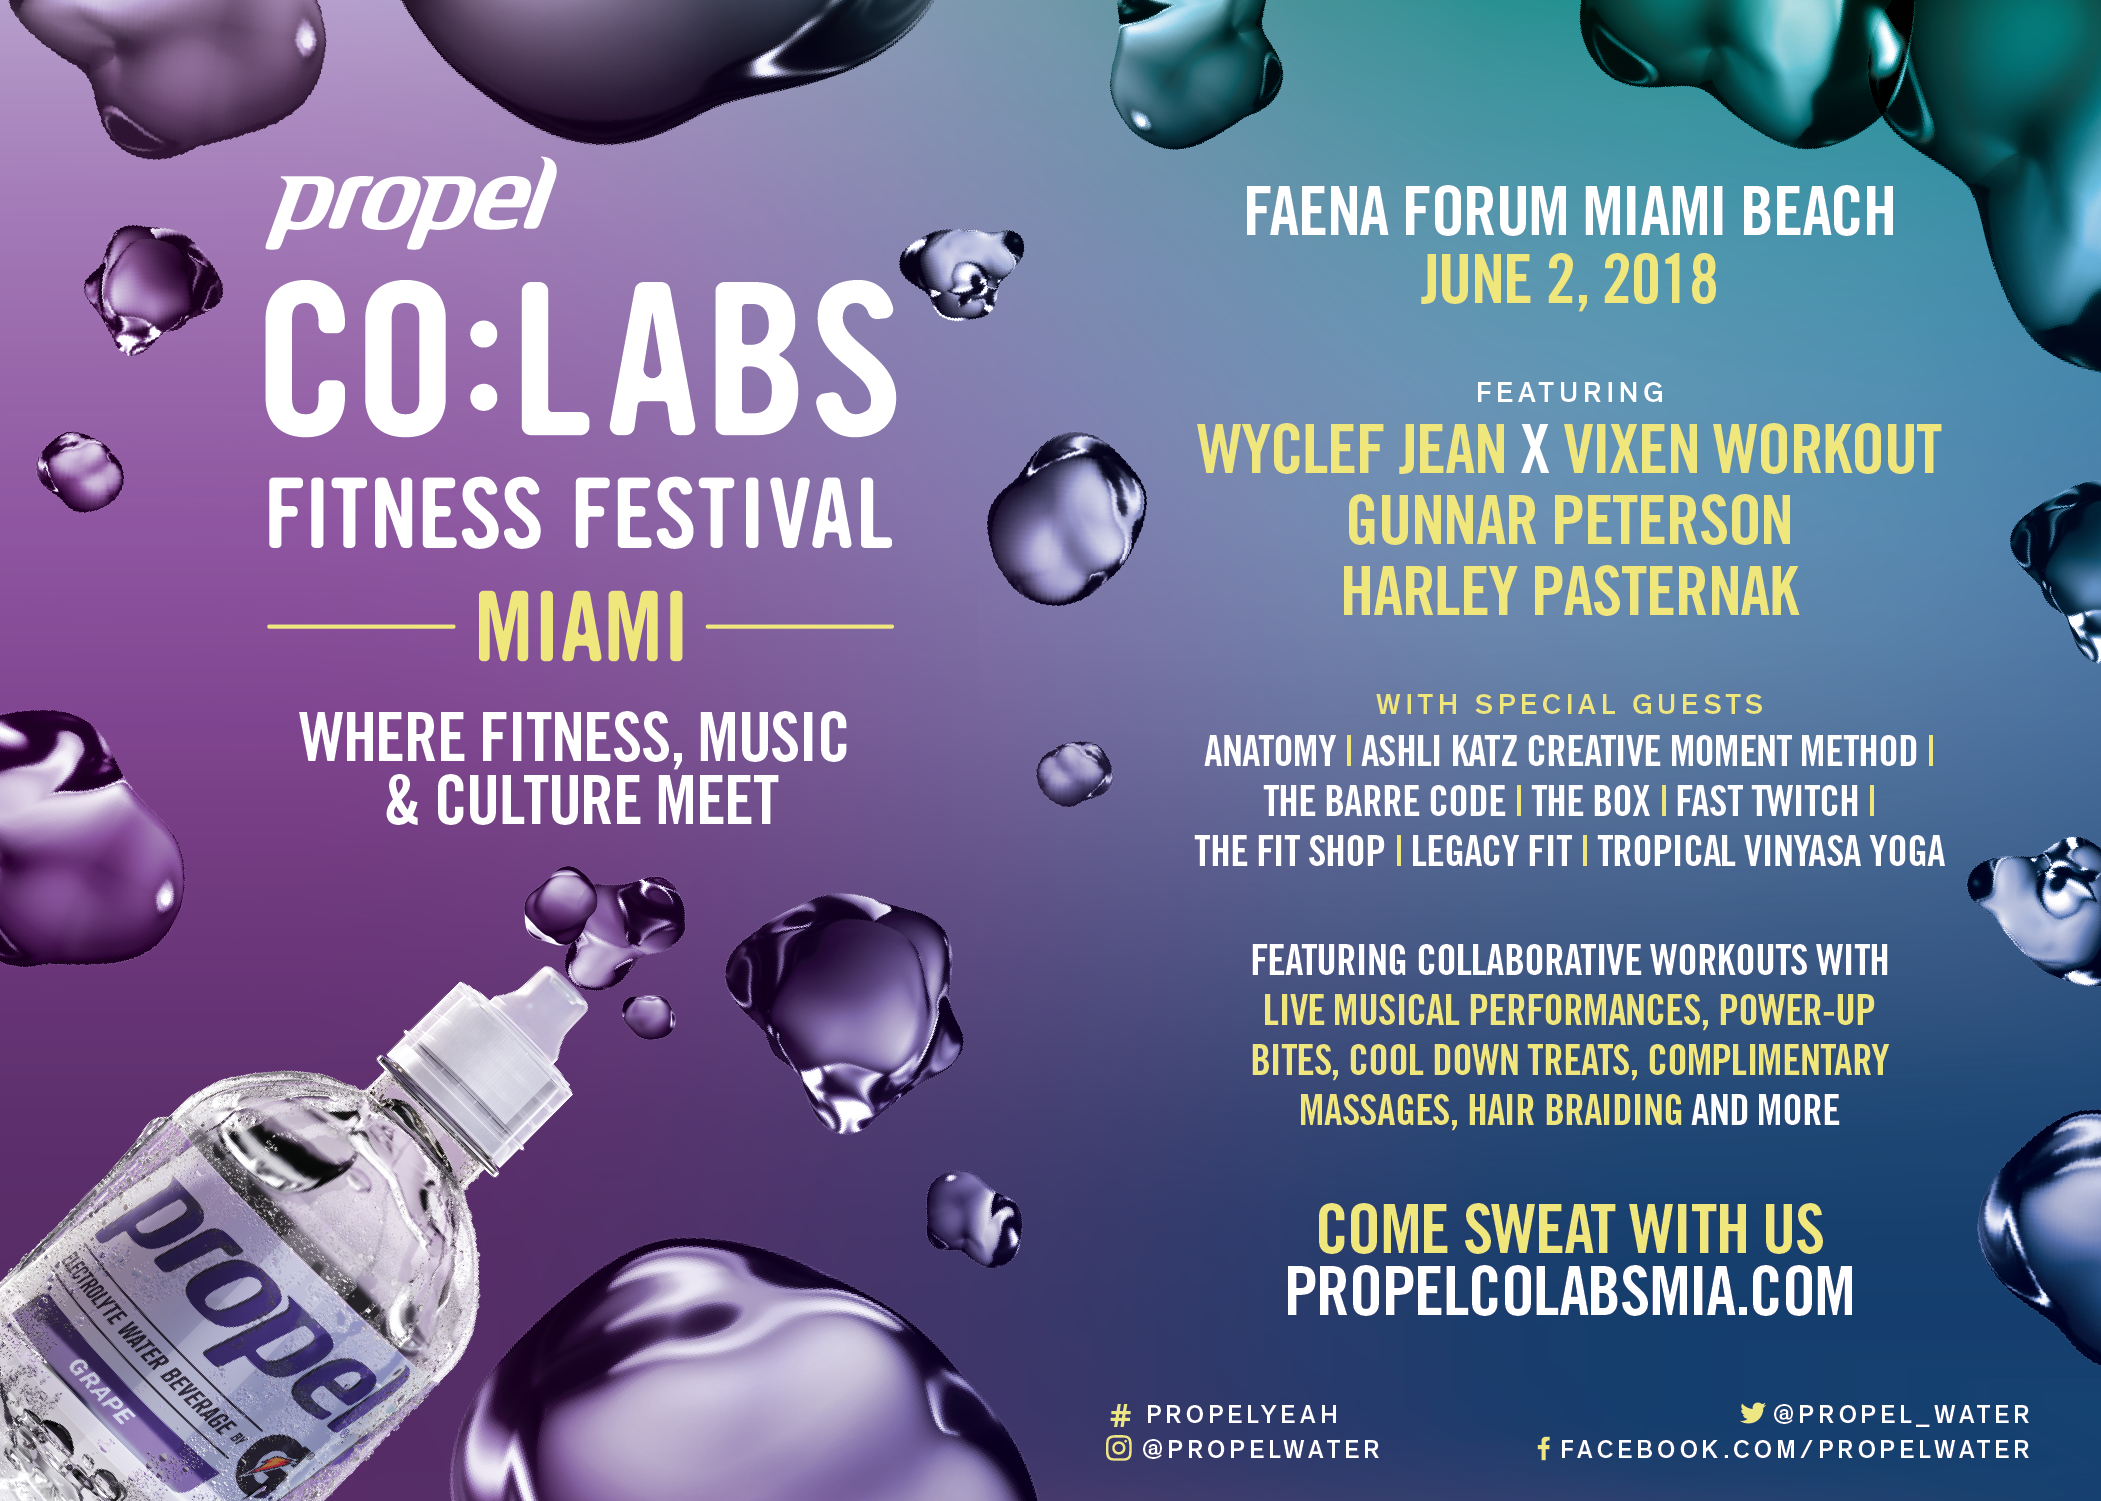 Propel Co:Labs with Wyclef Jean and Vixen Workout @ Faena Hotel | Miami Beach | Florida | United States